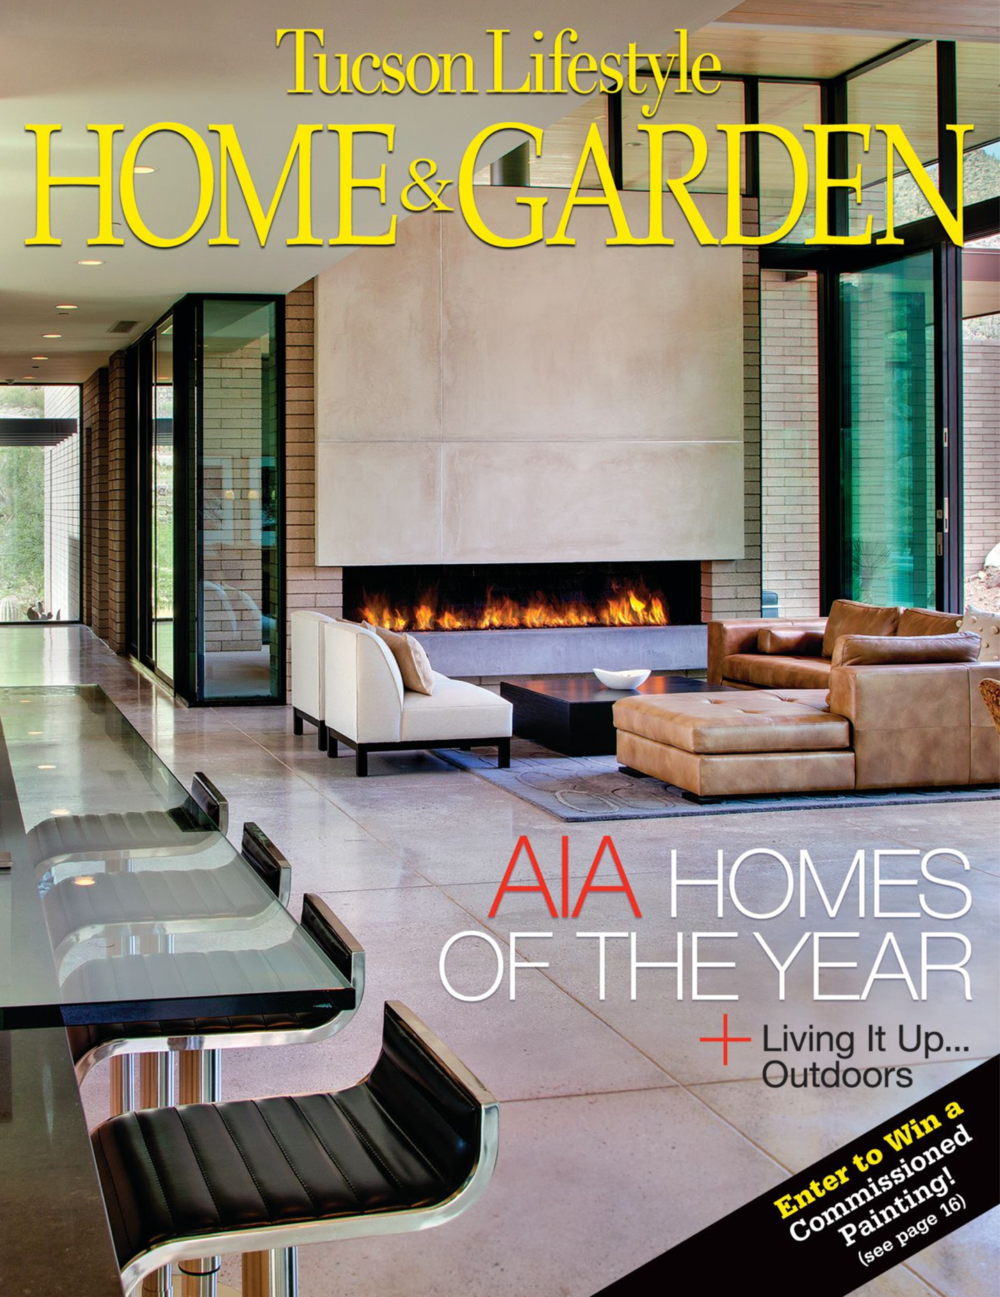 TUCSON LIFESTYLE HOME & GARDEN MAGAZINE Sept. 2011